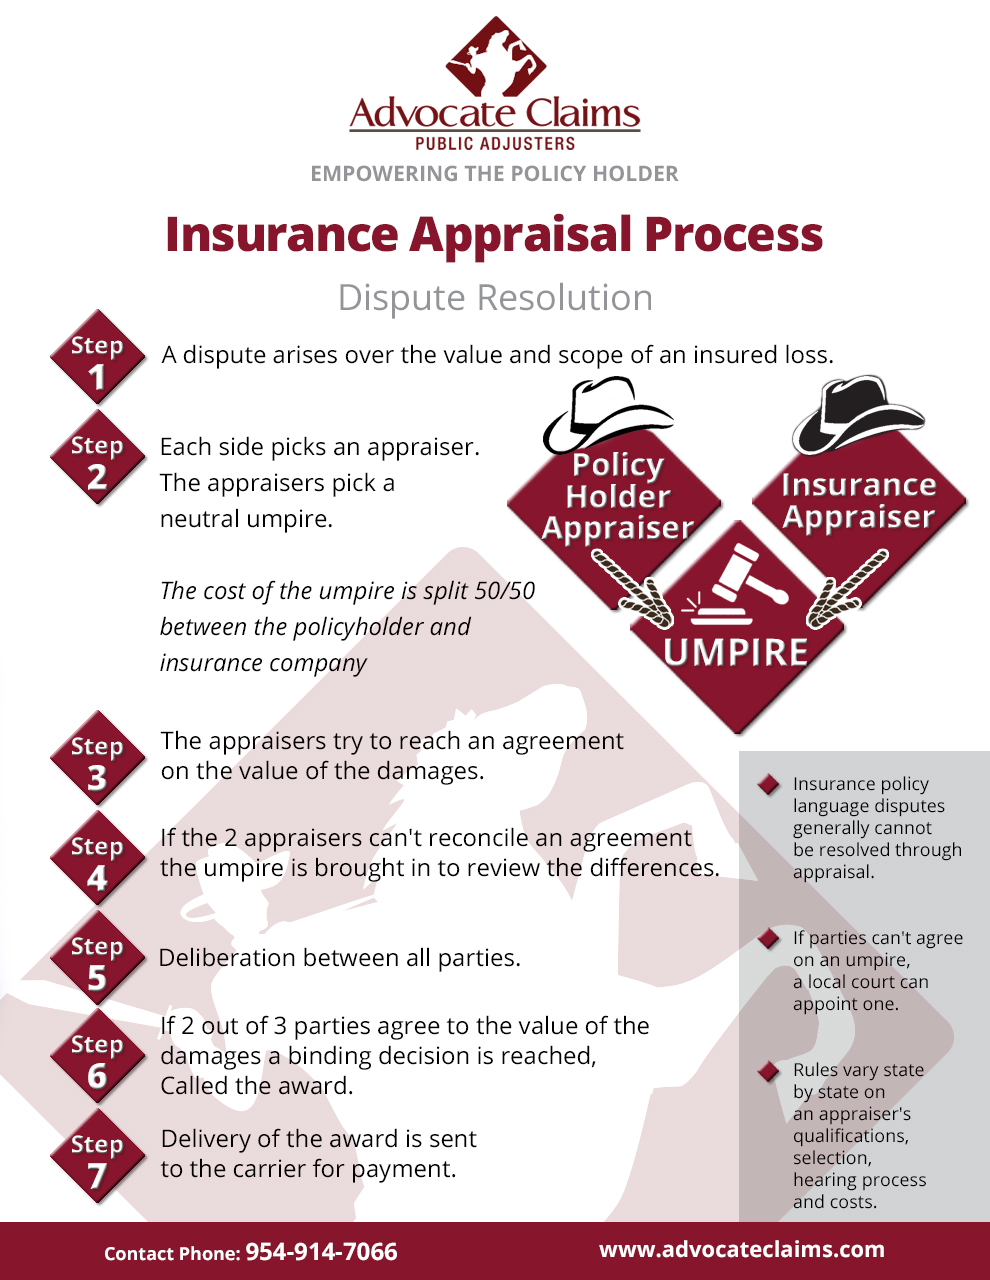 The Insurance Appraisal Process